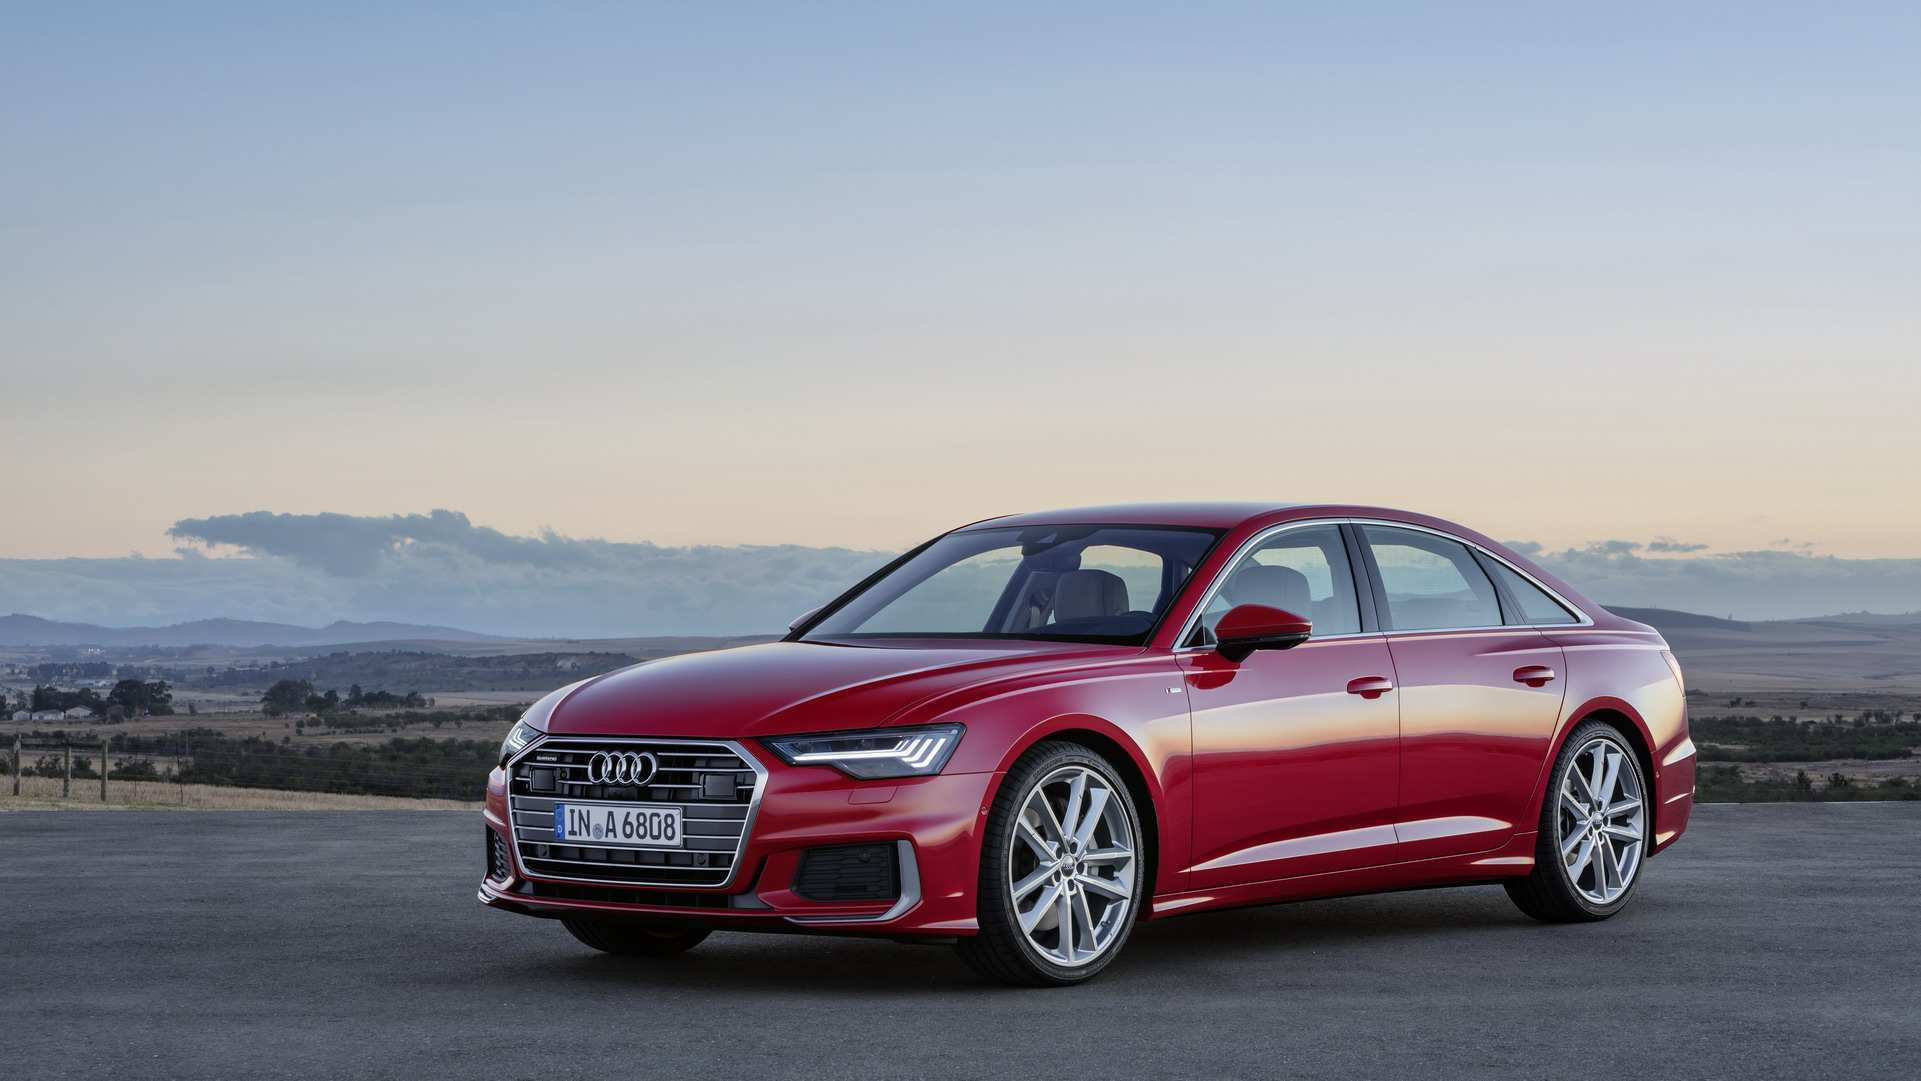 20 All New 2019 The Audi A6 Price And Review